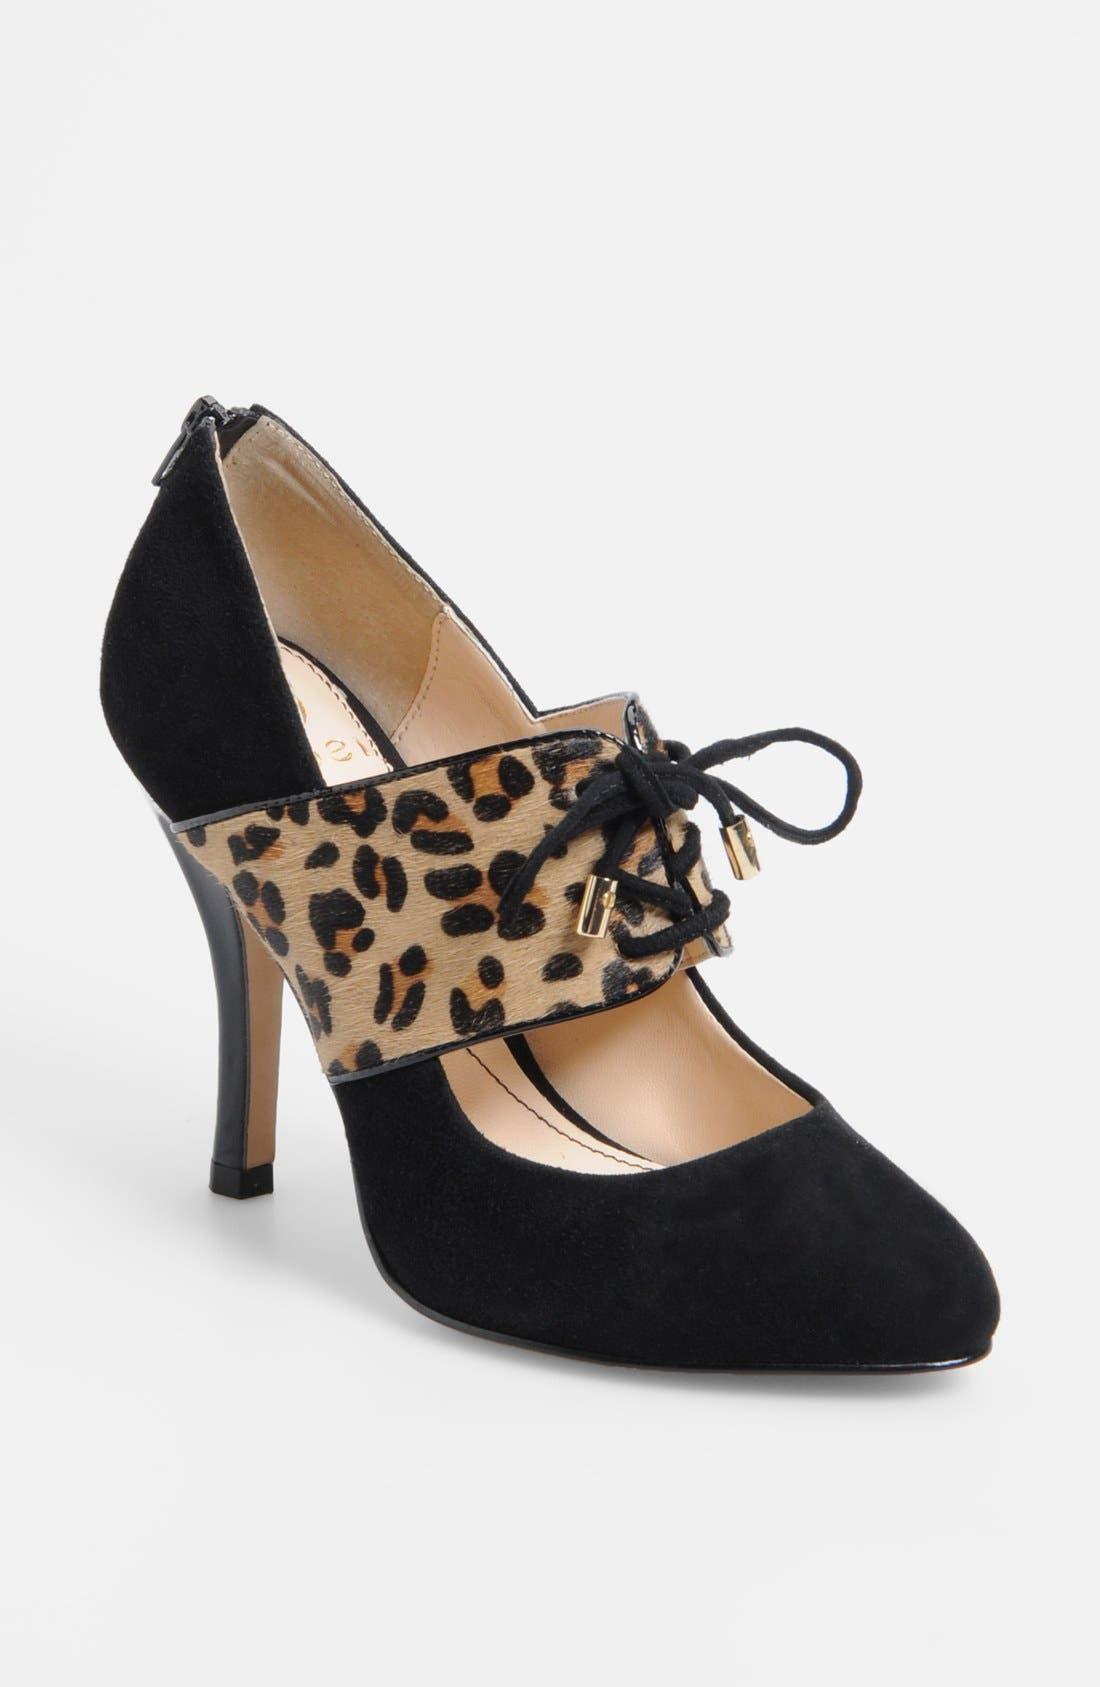 'Isabel' Pump,                             Main thumbnail 1, color,                             Black/ Leopard